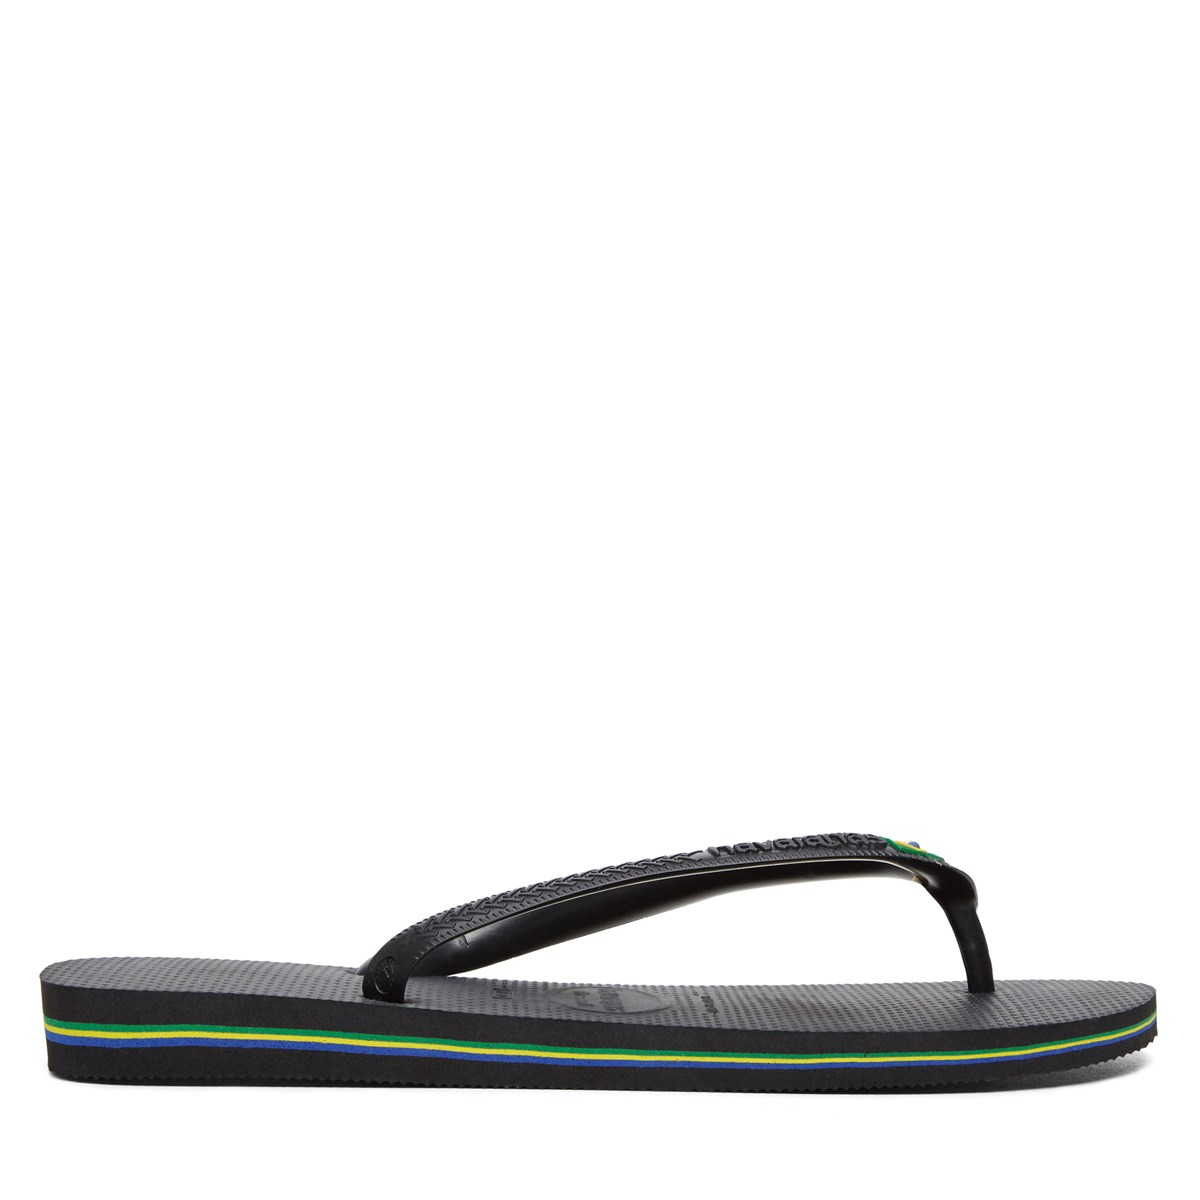 Men's Brasil Sandals in Black